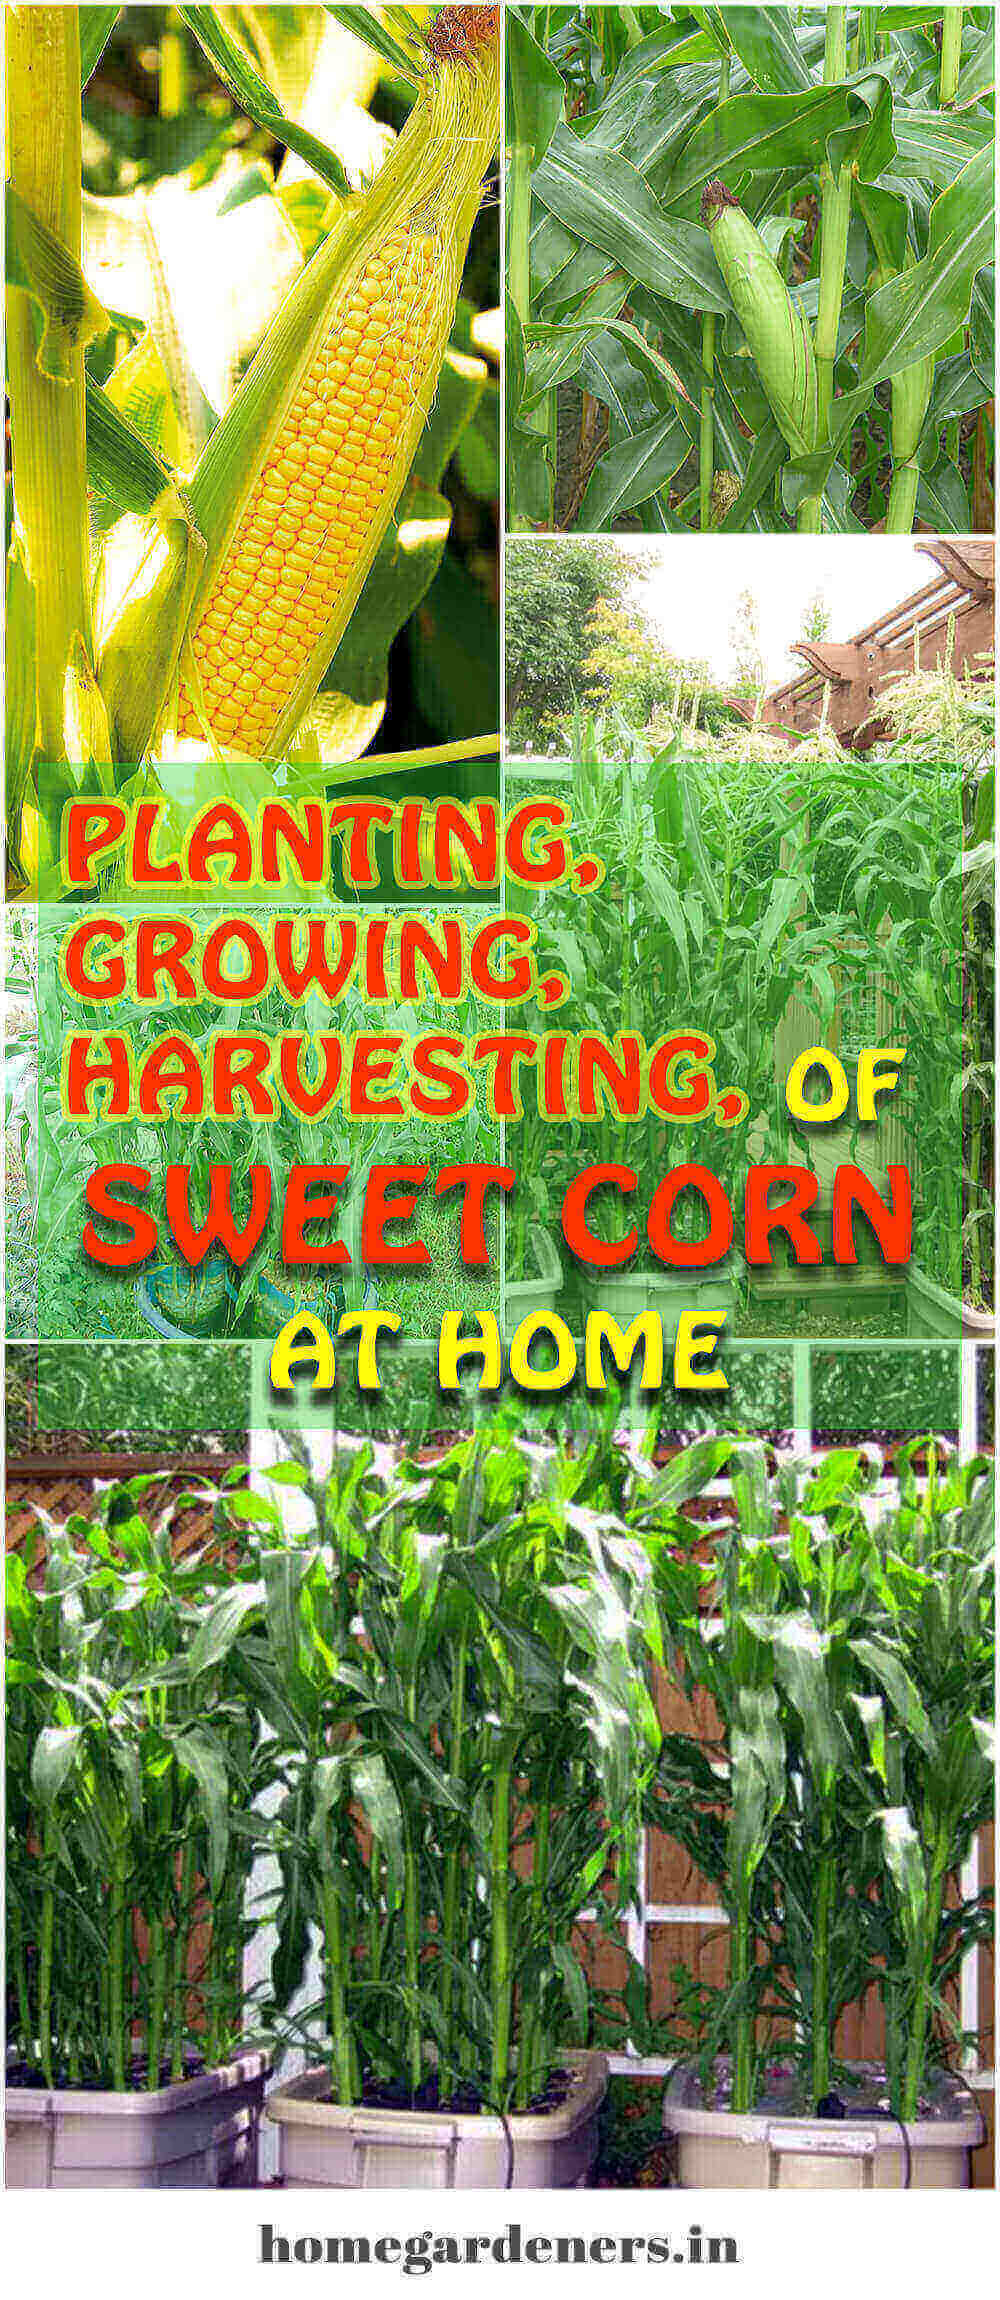 Planting, Growing and Harvesting of Sweet corn at home